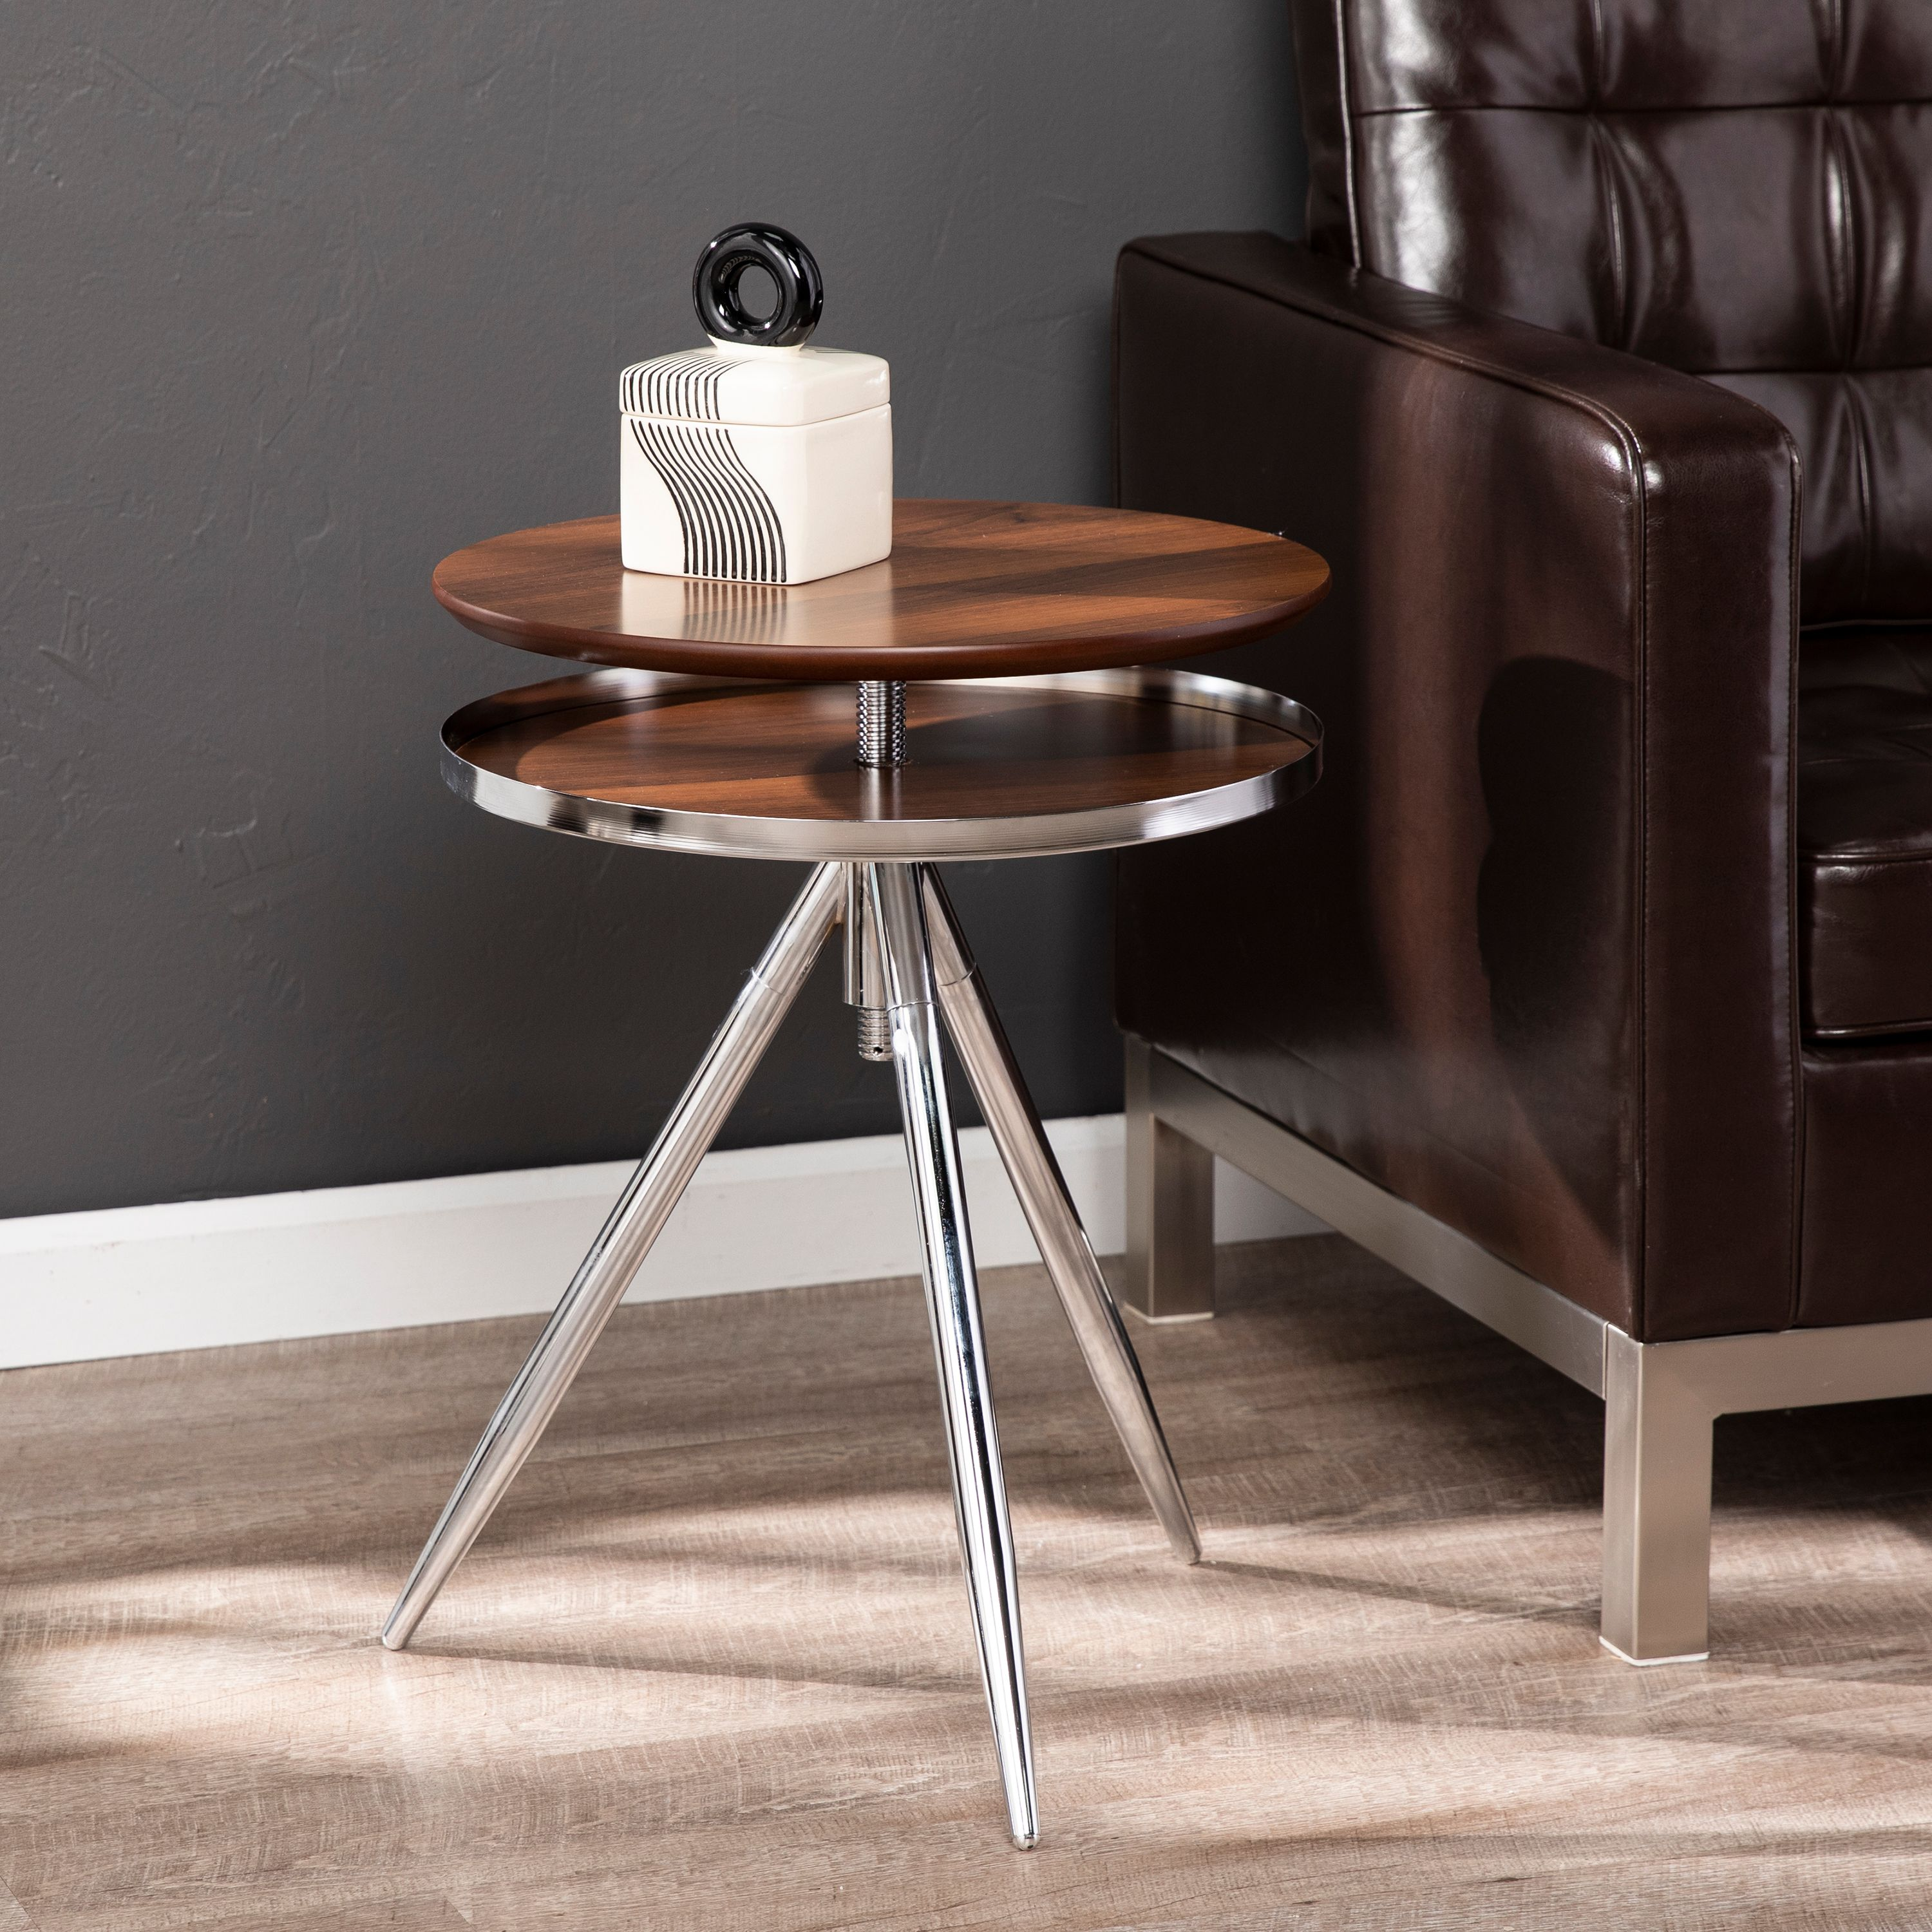 Bovai Adjustable Accent Table, Midcentury Modern, Silver